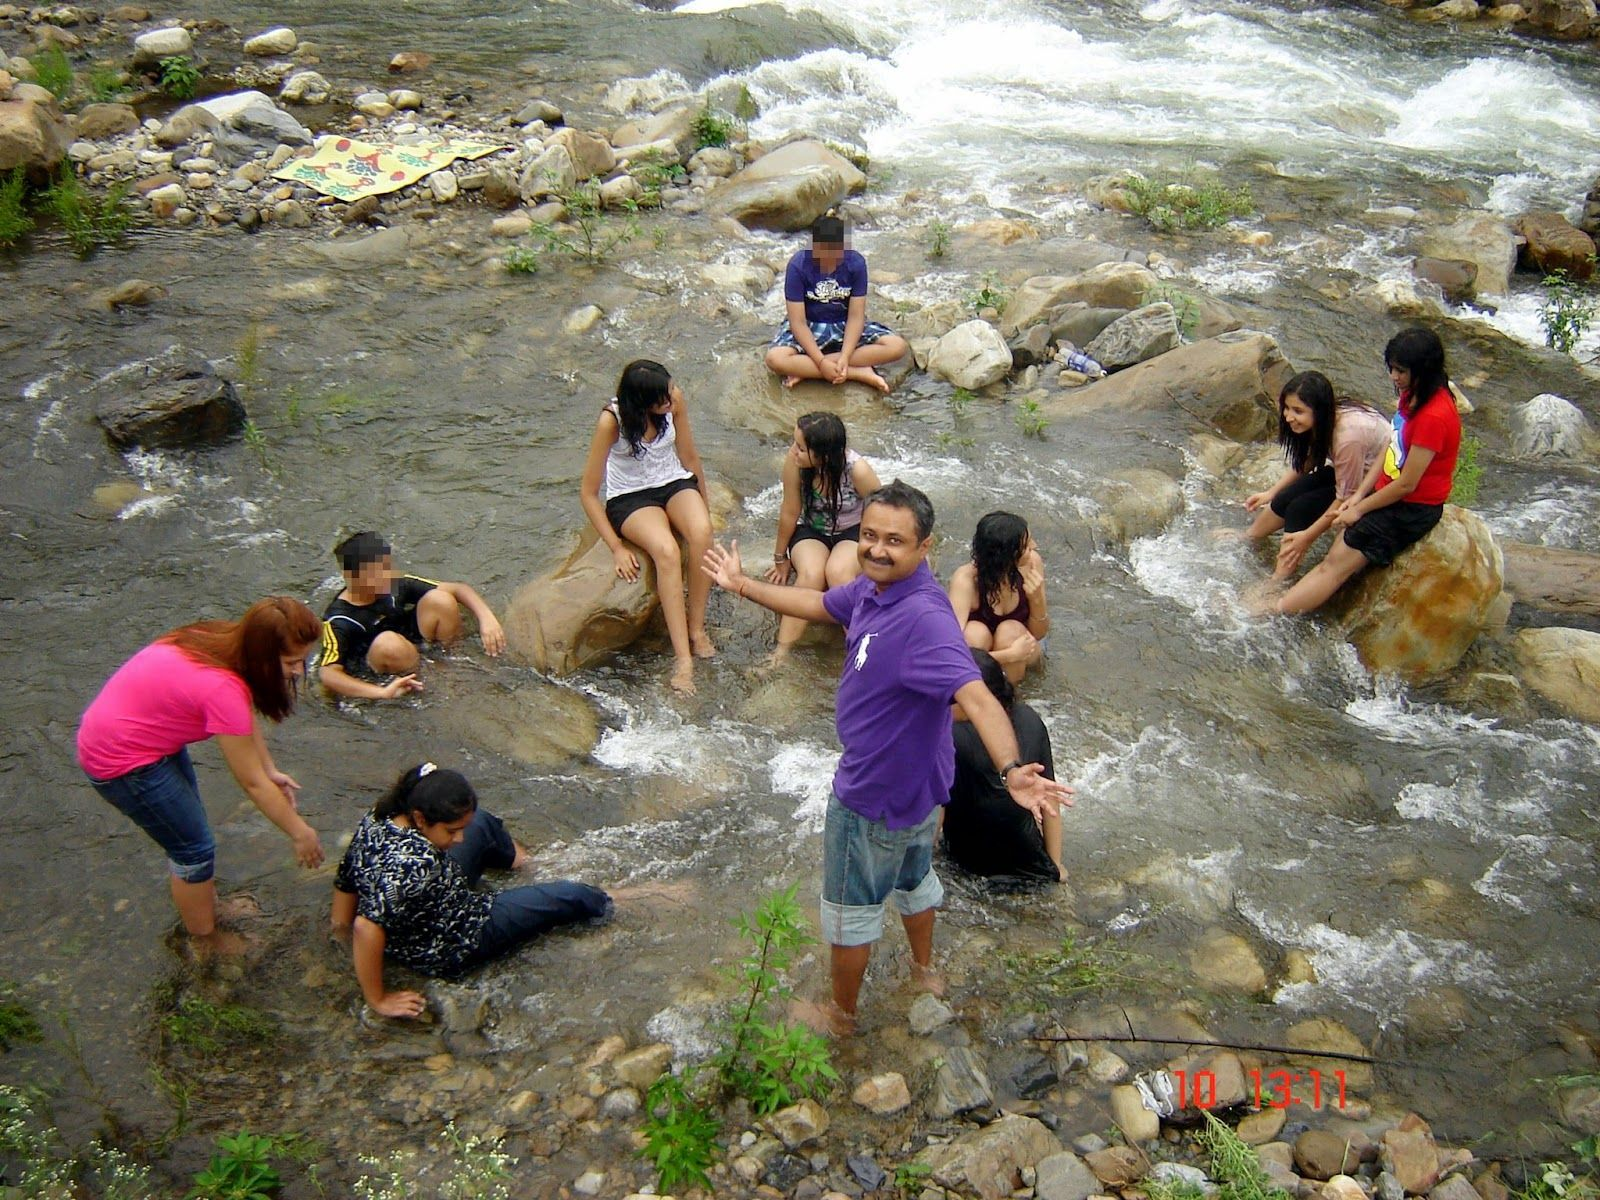 Indian Hot Tourist Girls Group Bathing In River Photos -5582